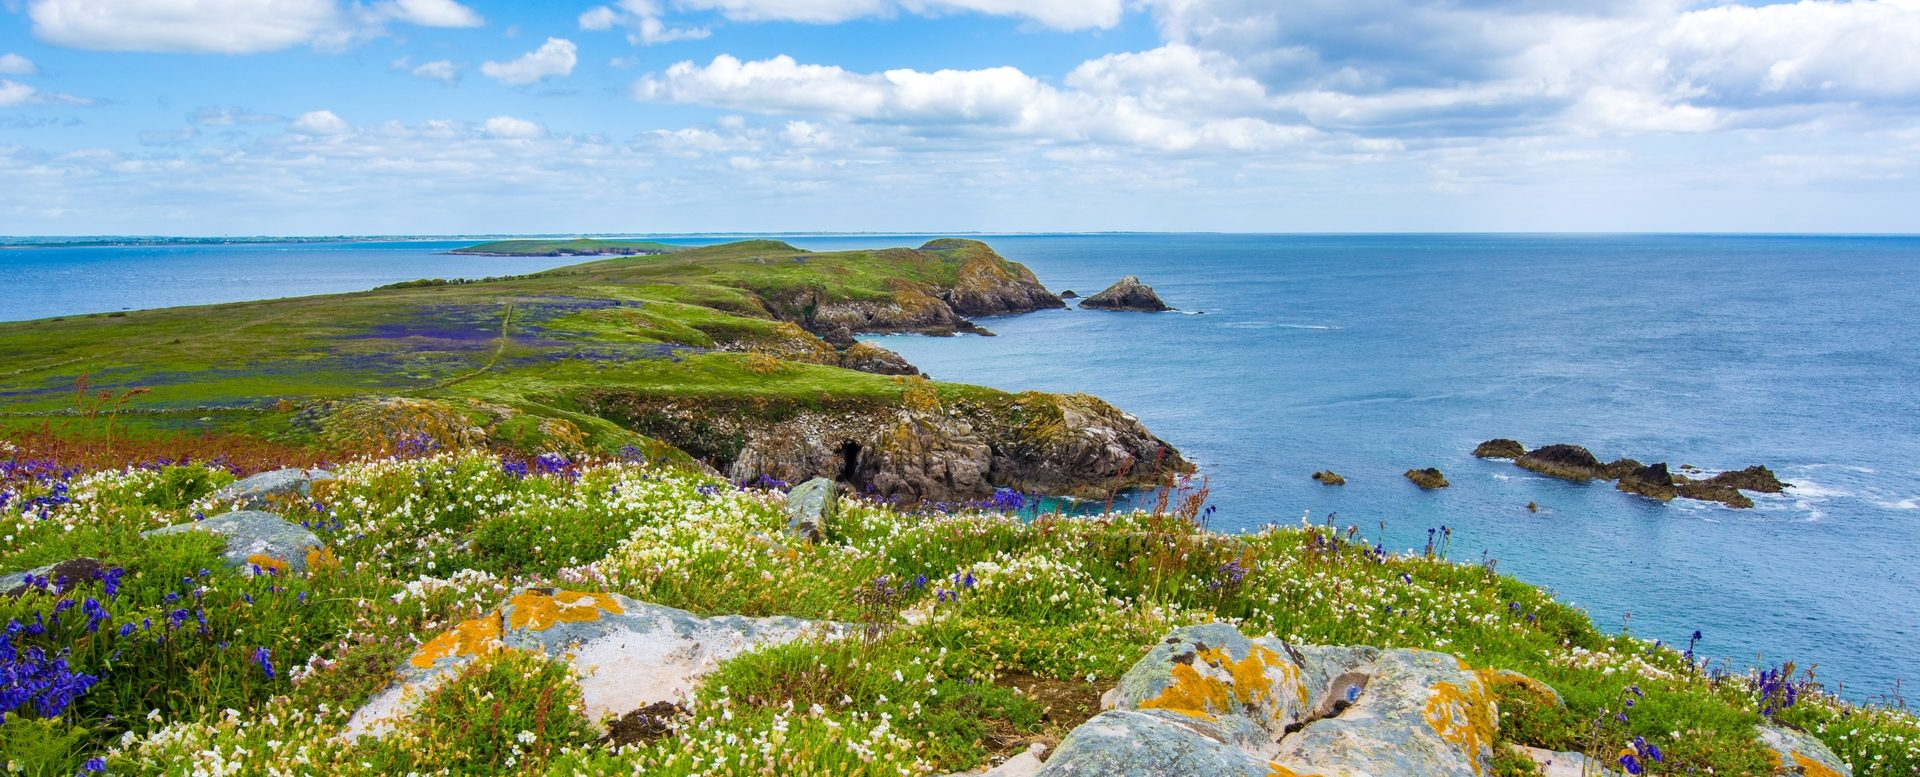 Saltee Islands Wexford